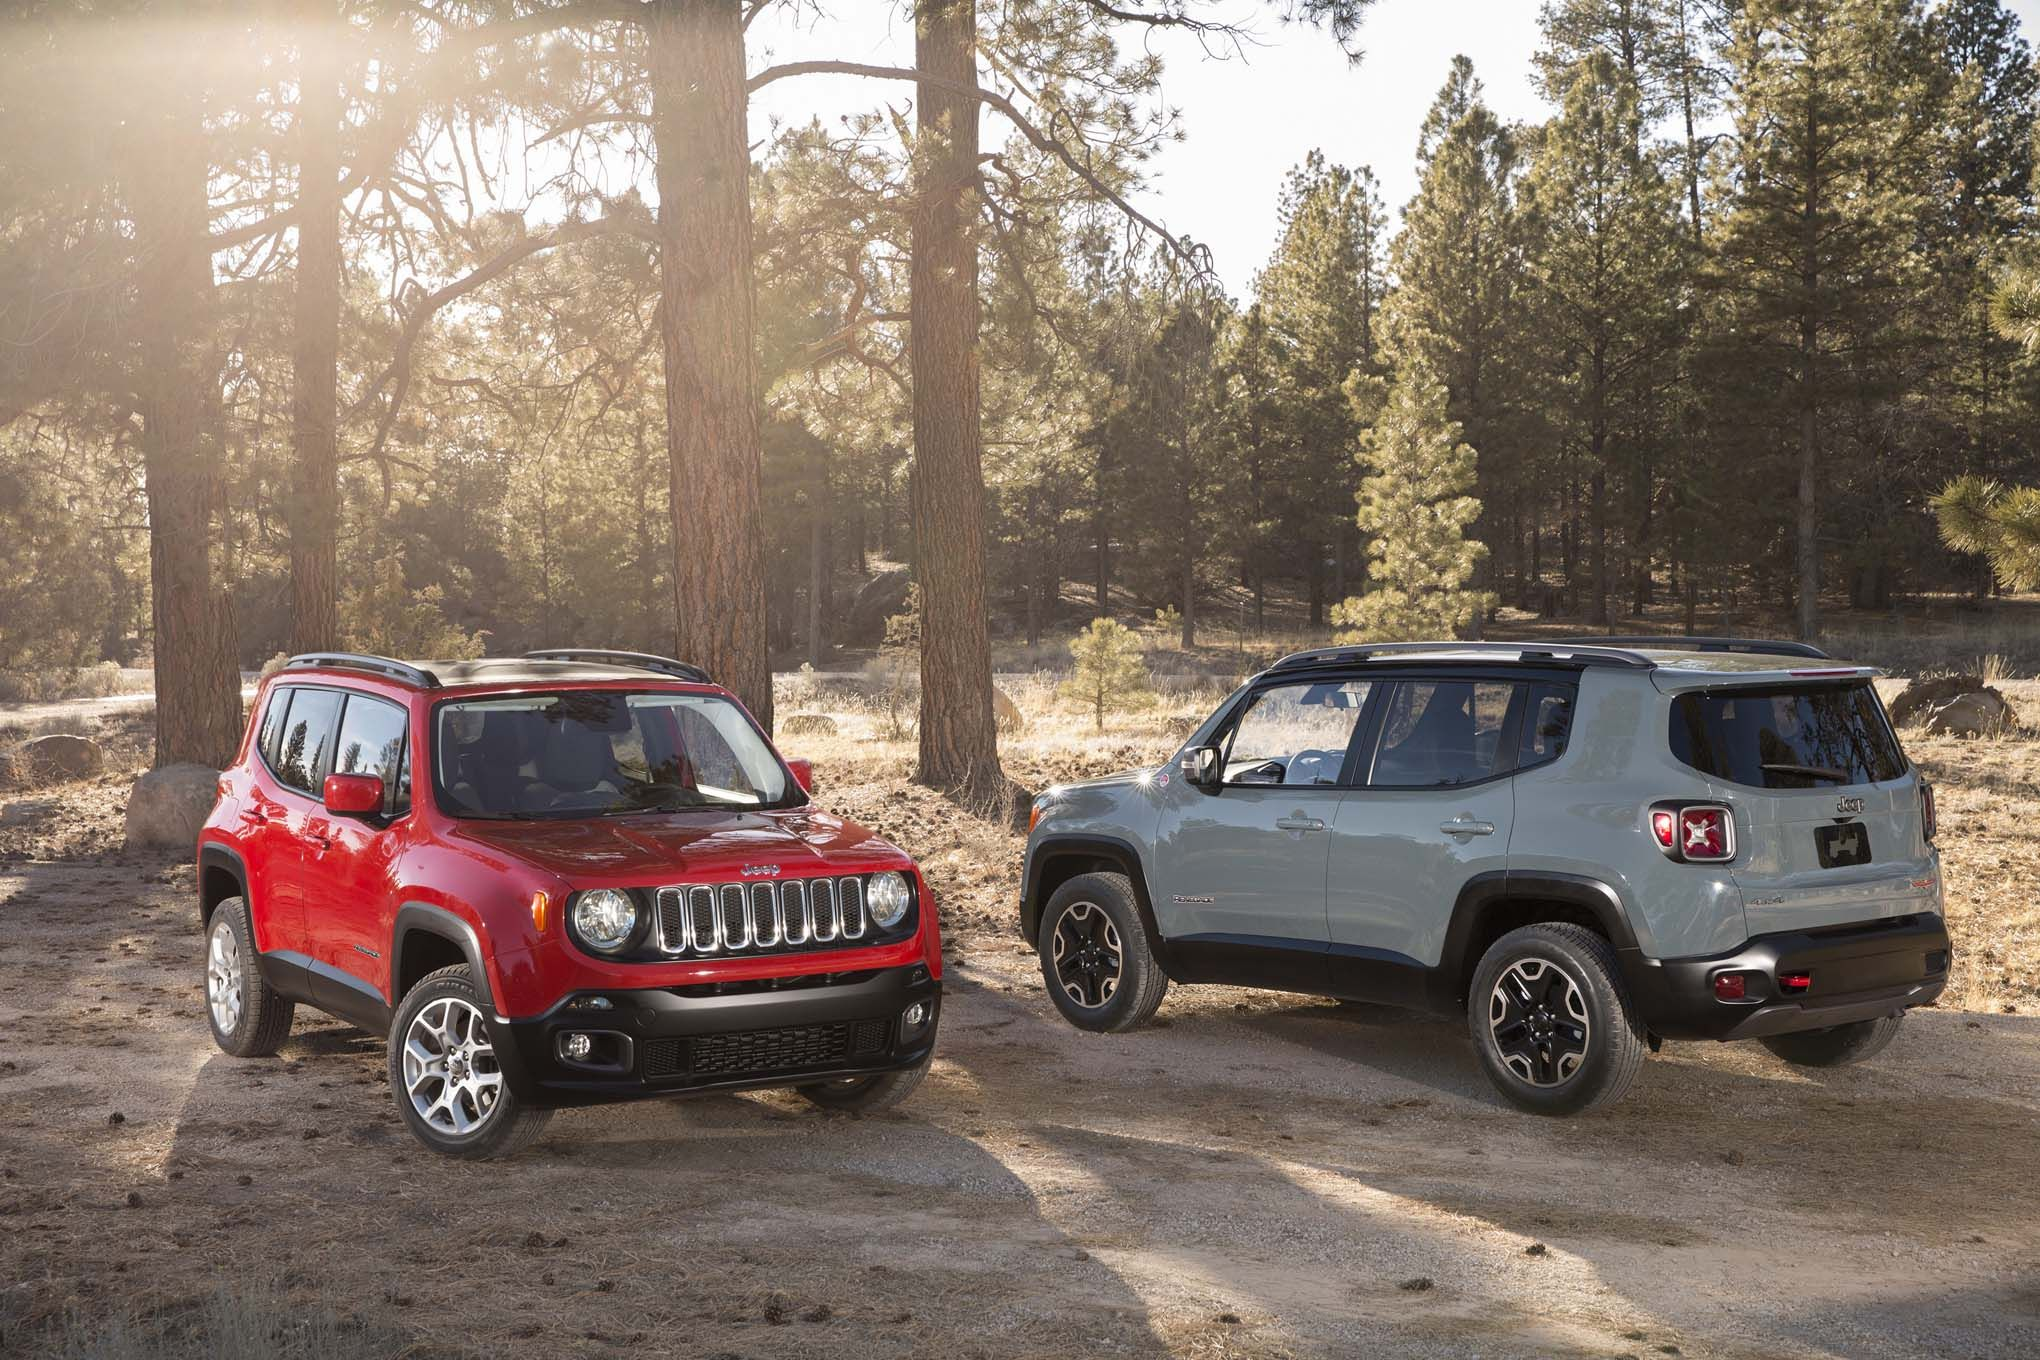 The 2015 Jeep Renegade Is Here Why Aren T You Take A Look At One Today At Ancira Chrysler Jeep Do Jeep Renegade 2015 Jeep Renegade Jeep Renegade Trailhawk